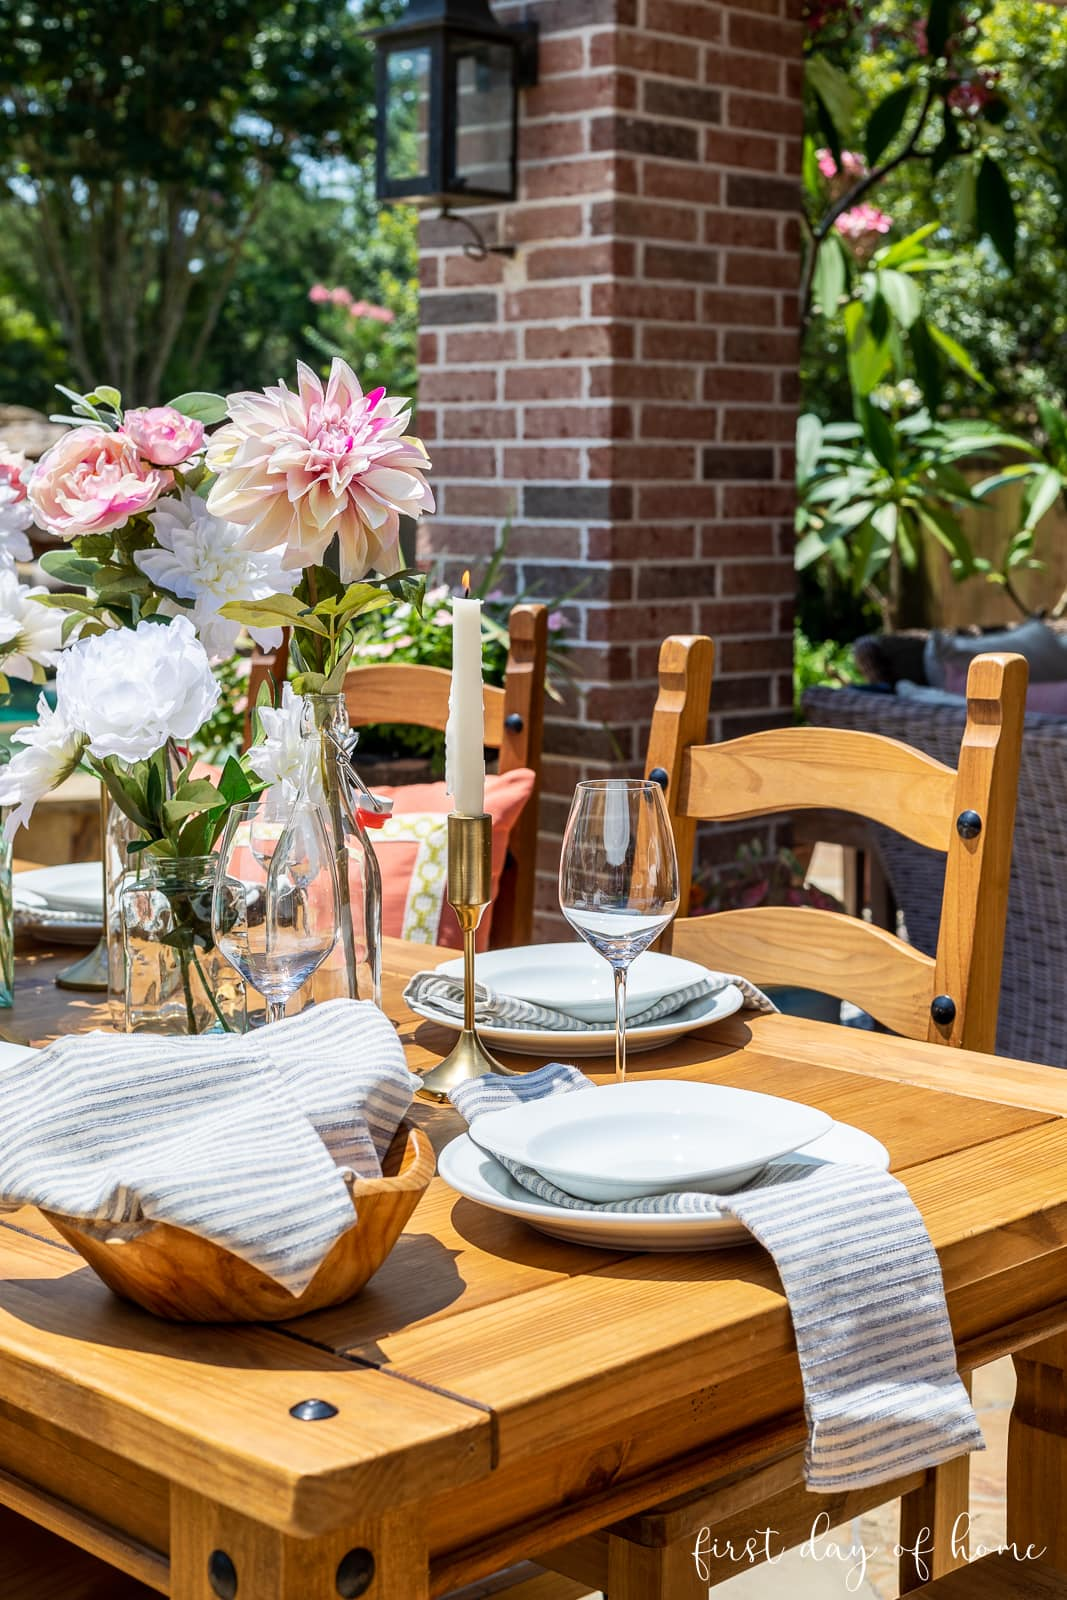 Outdoor table decorations with taper candles, faux florals and glass bottles